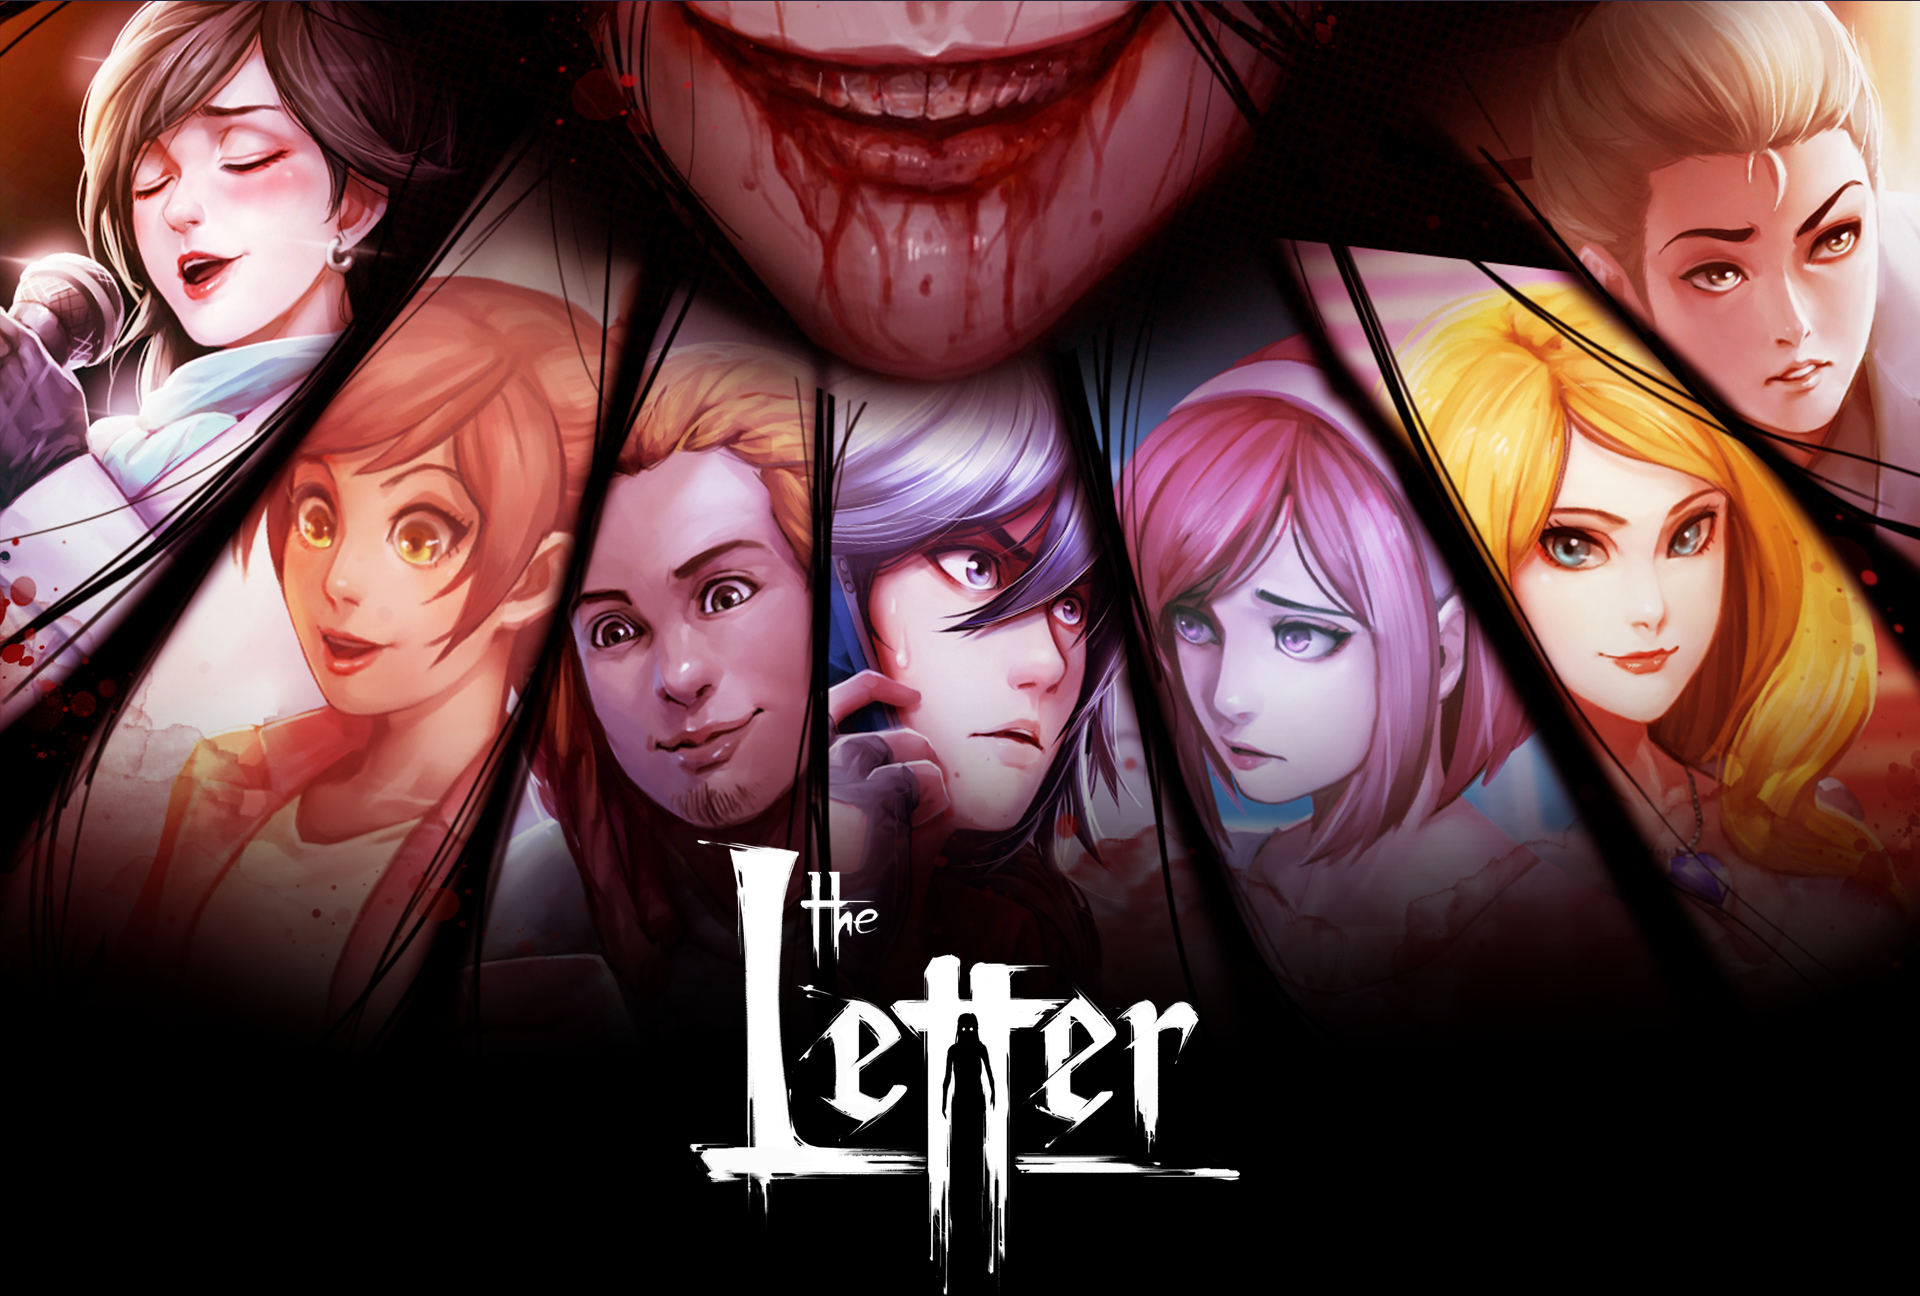 The Letter - Horror Visual Novel